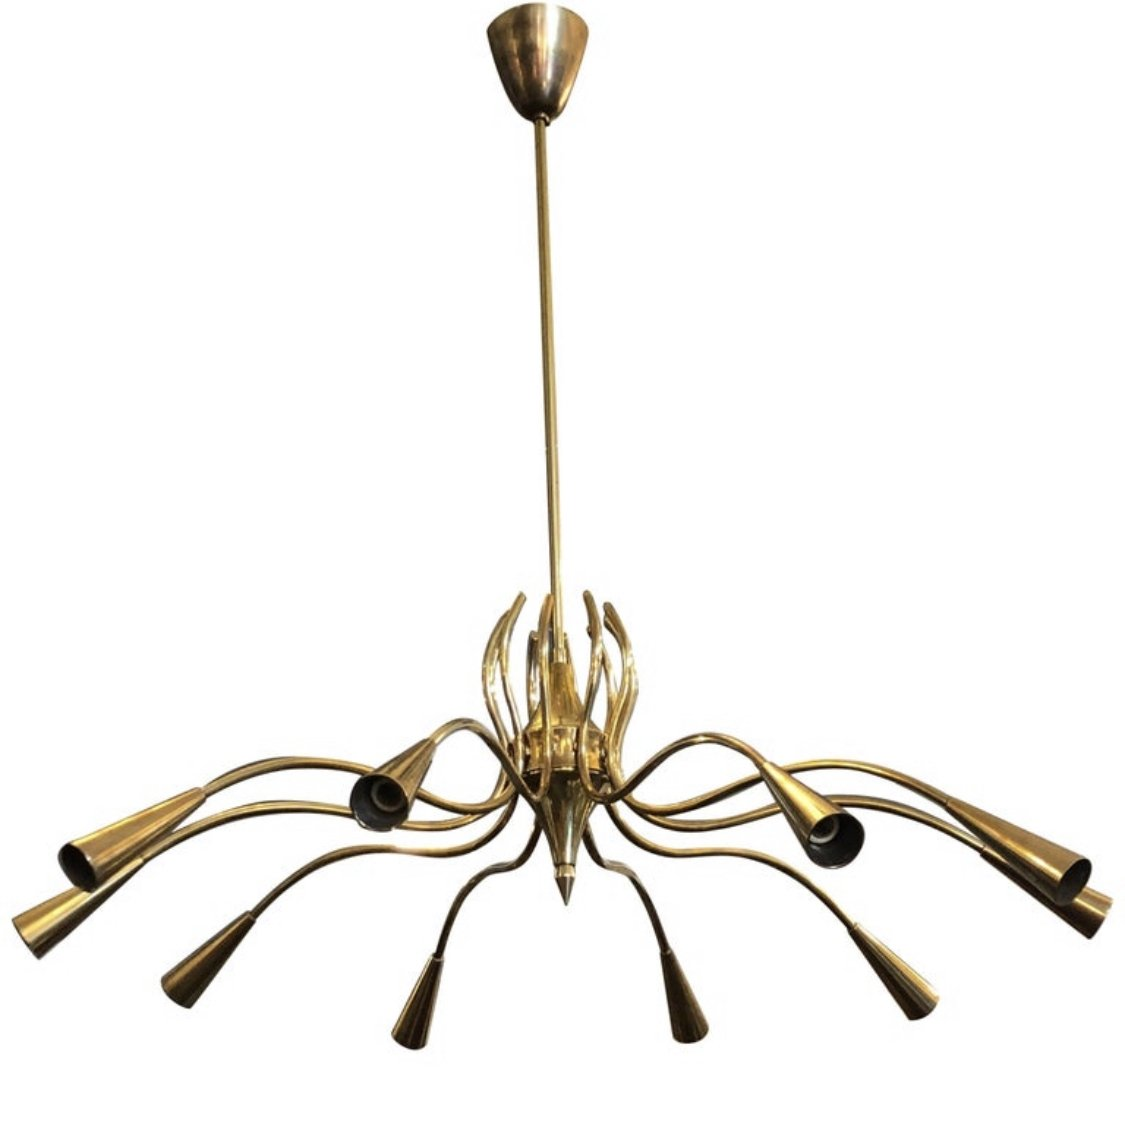 Stylish Mid Century Modern Brass Italian Ten Light Chandelier Circa 1950 107943